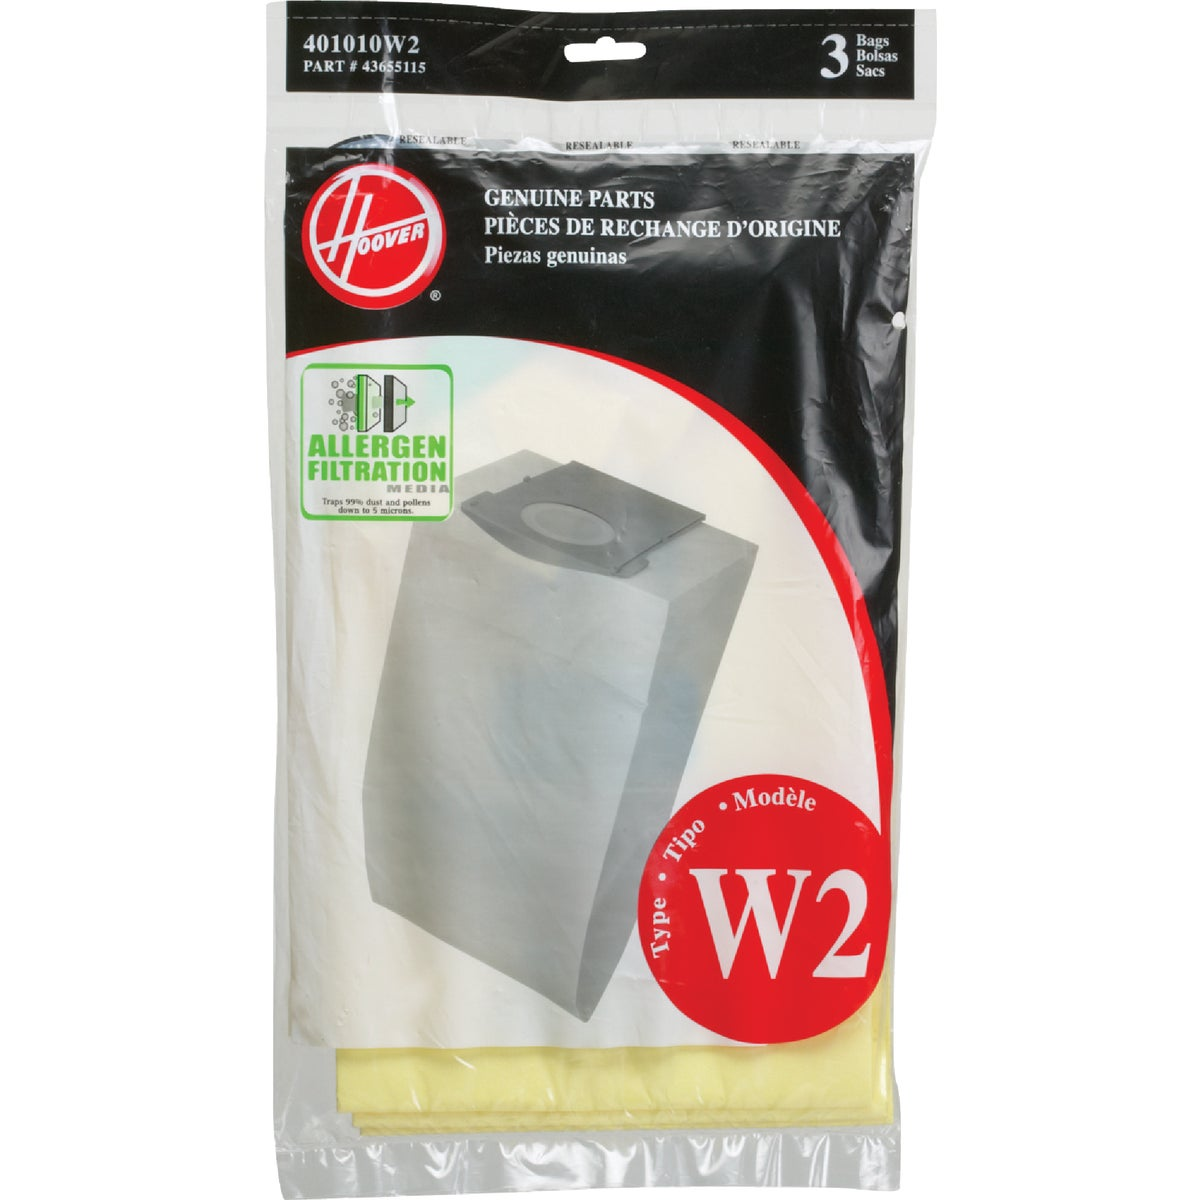 ALLERGEN WT2 BAG - 401010W2 by Hoover Co